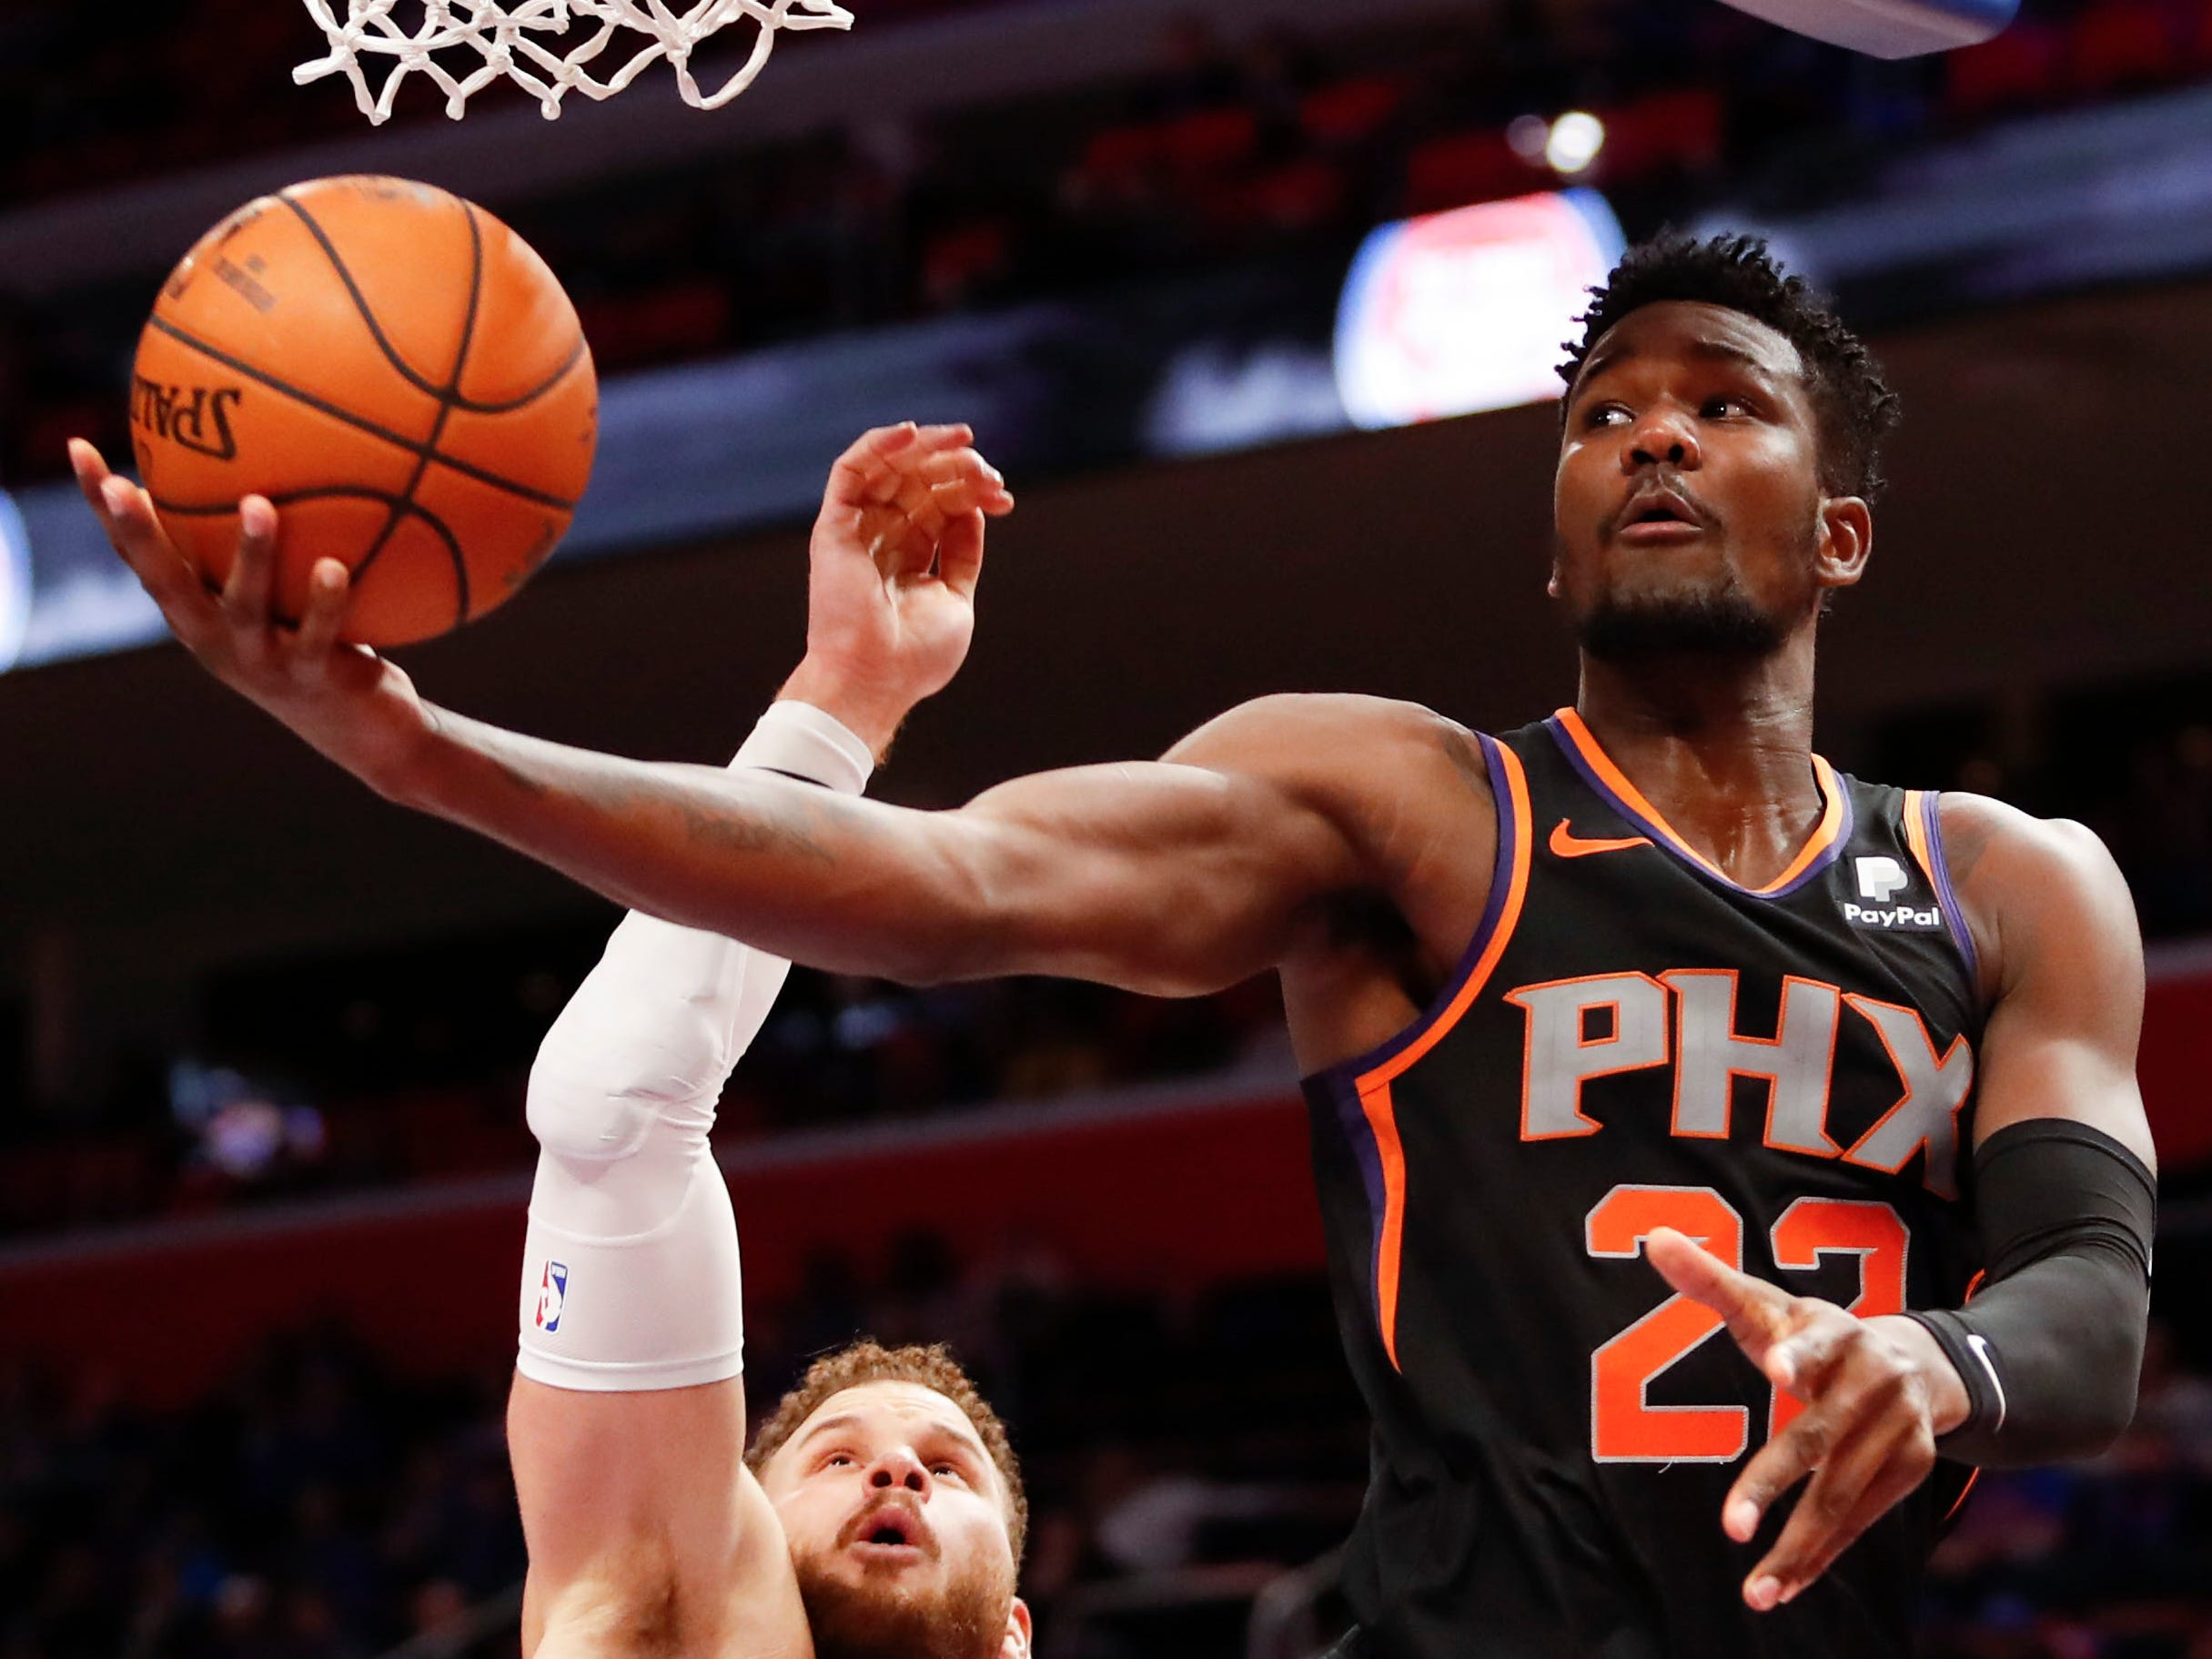 Nov 25, 2018; Detroit, MI, USA; Phoenix Suns center Deandre Ayton (22) goes up for a shot against Detroit Pistons forward Blake Griffin (23) during the fourth quarter at Little Caesars Arena. Mandatory Credit: Raj Mehta-USA TODAY Sports